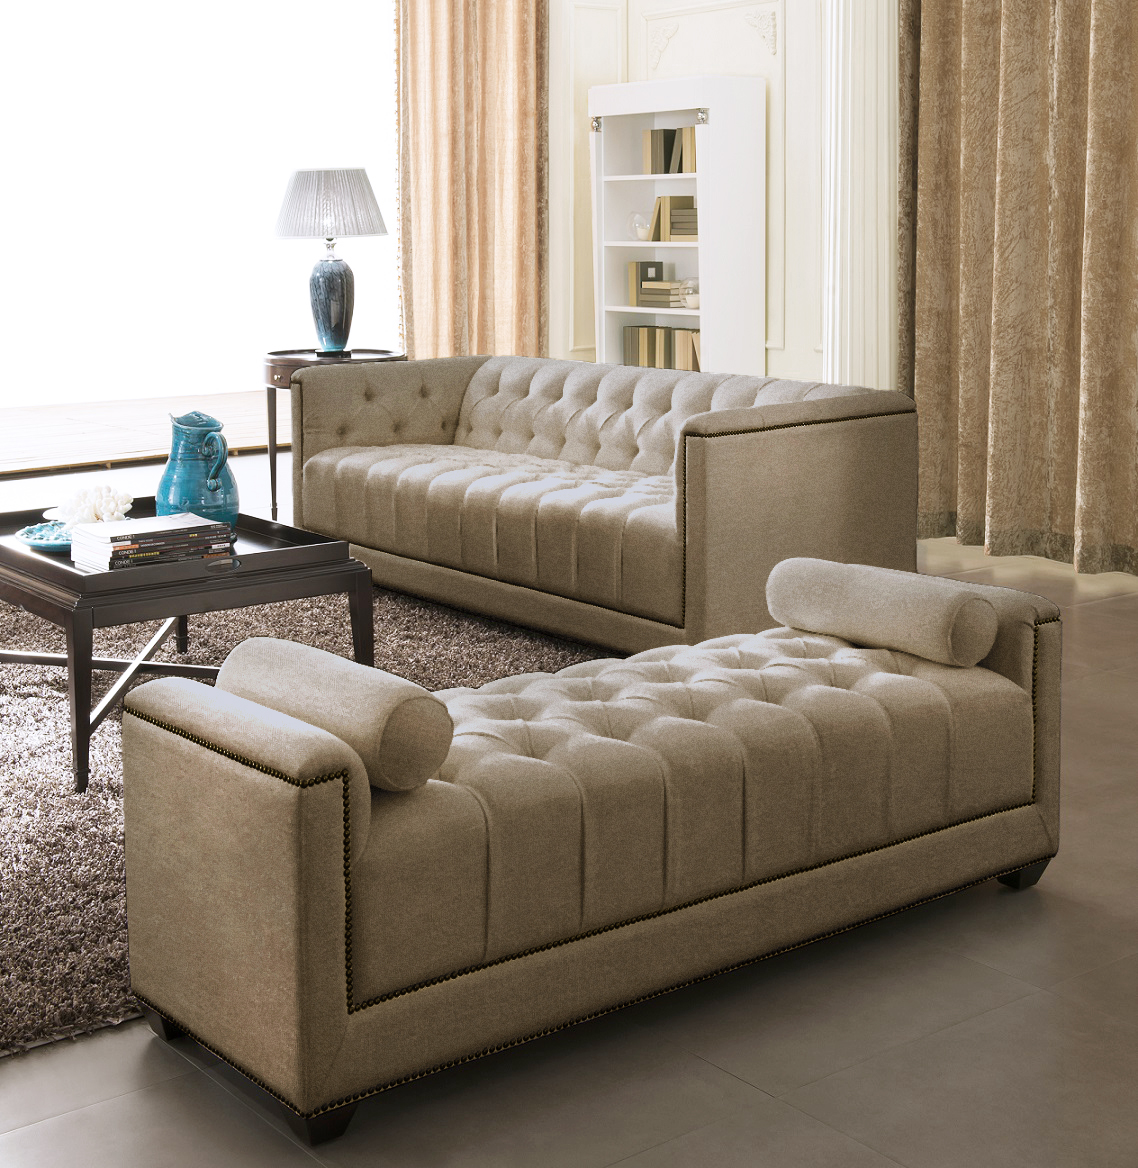 Modern Sofa Set - Living Room Sofa Set - Eden - Moki